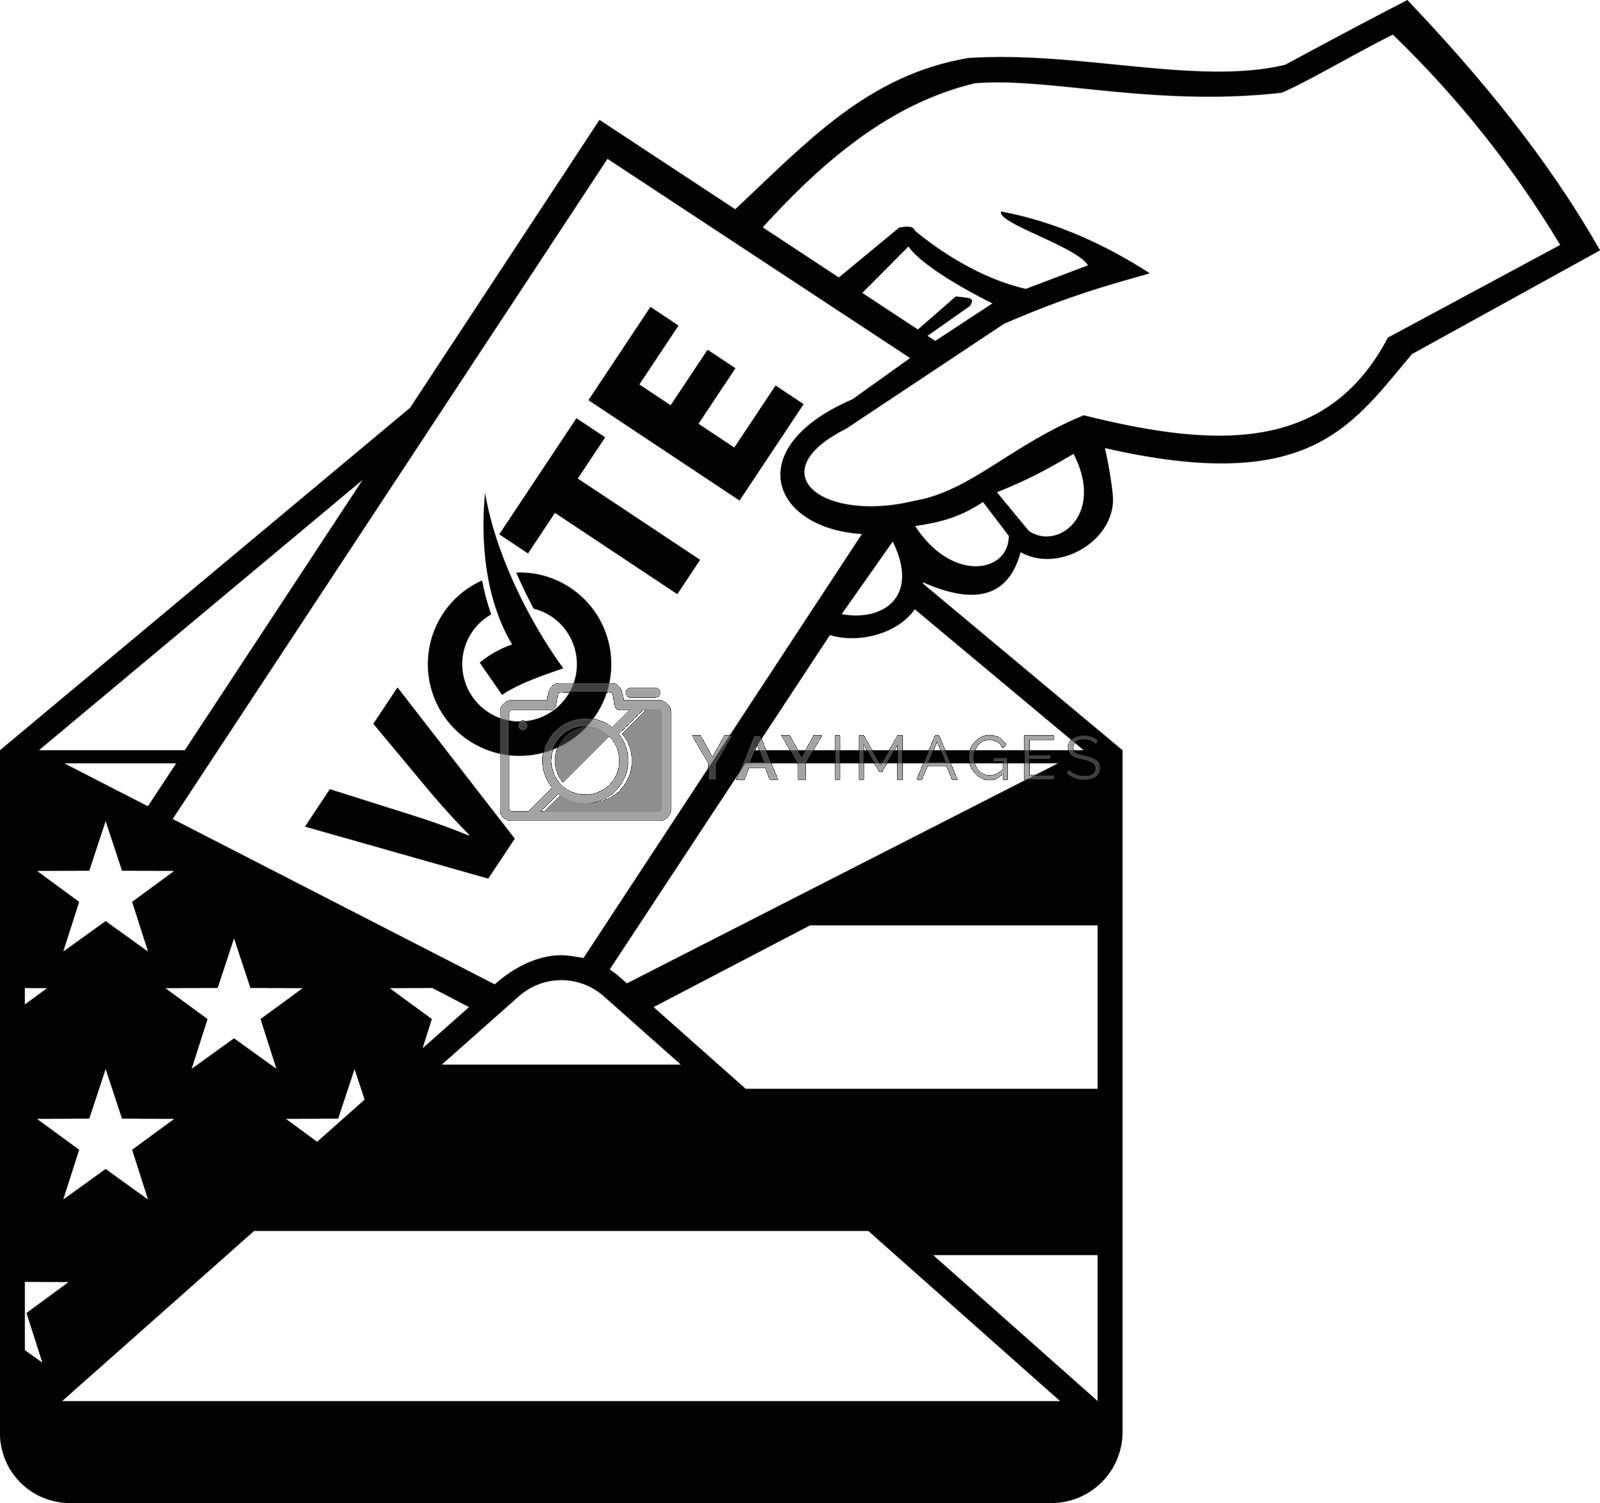 Retro black and white style illustration of a hand of an American voter posting ballot or vote inside postal ballot envelope with USA stars and stripes flag on isolated background.